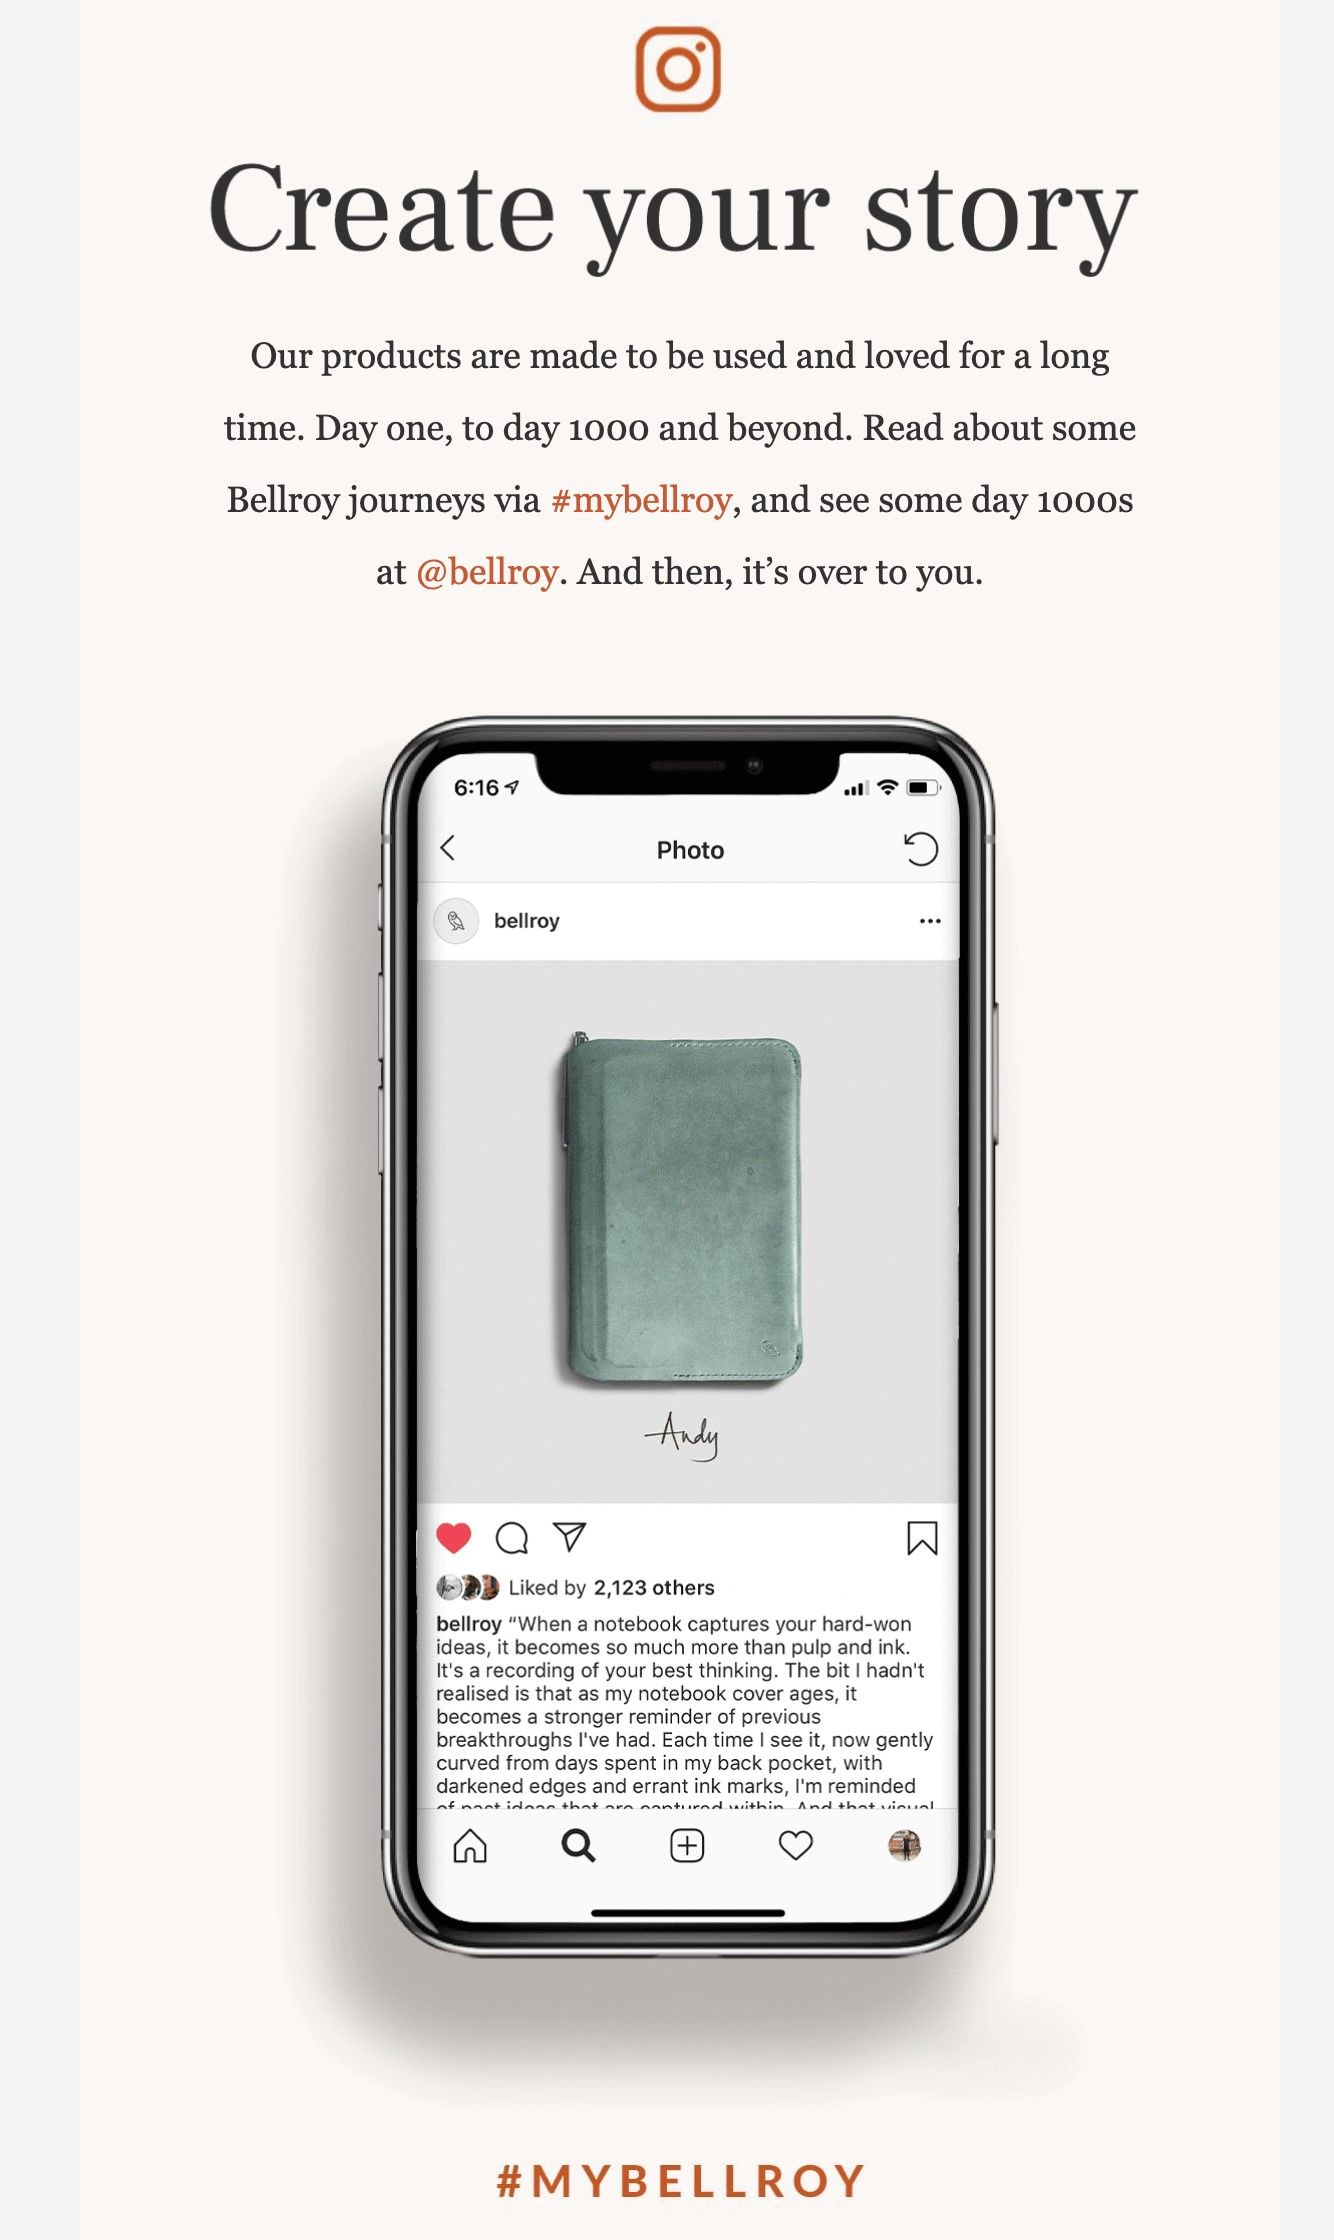 Bellroy drip email campaign 2